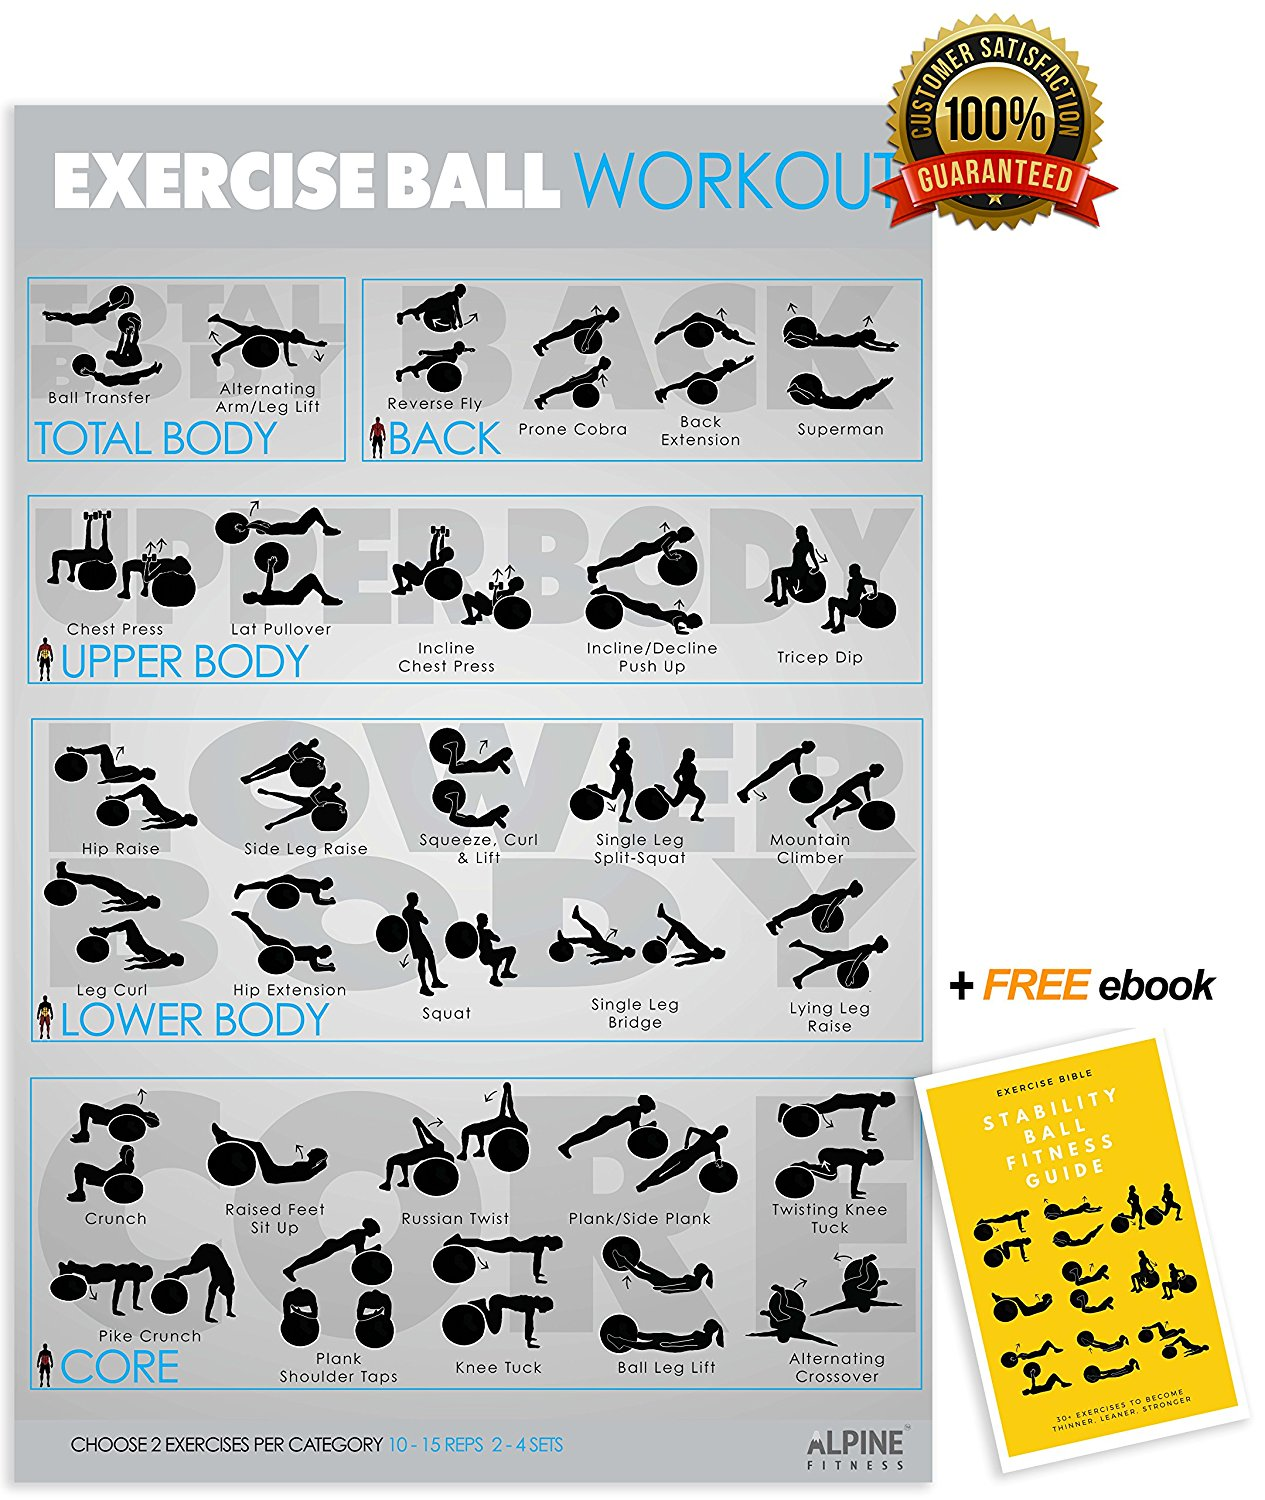 Buy Kettlebell Workout Exercise Poster Laminated - Home Gym